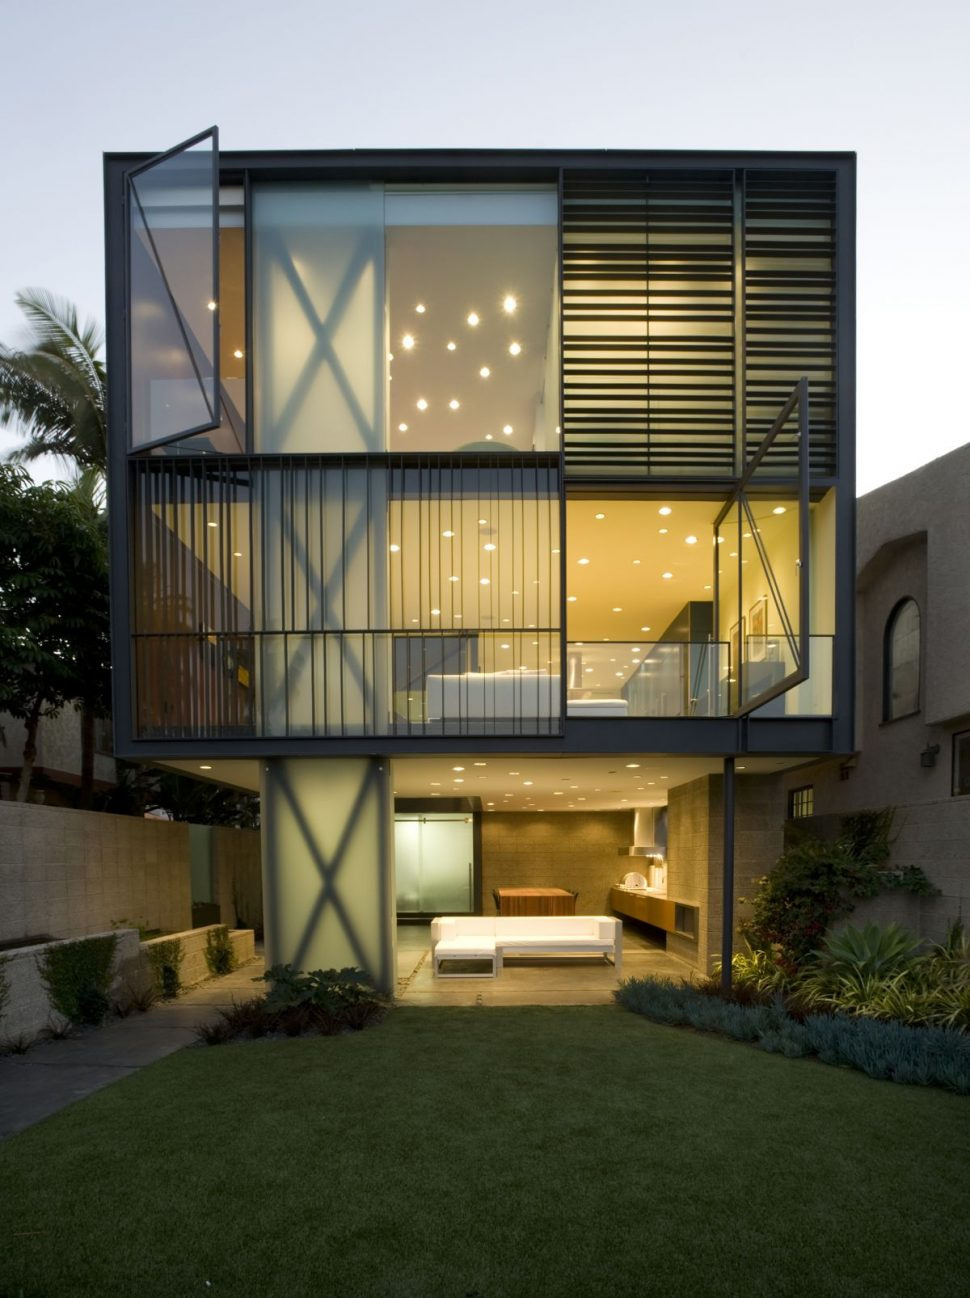 Pictures Of Small Modern Houses Elegant Exteriors Architecture Inspiration Architecture